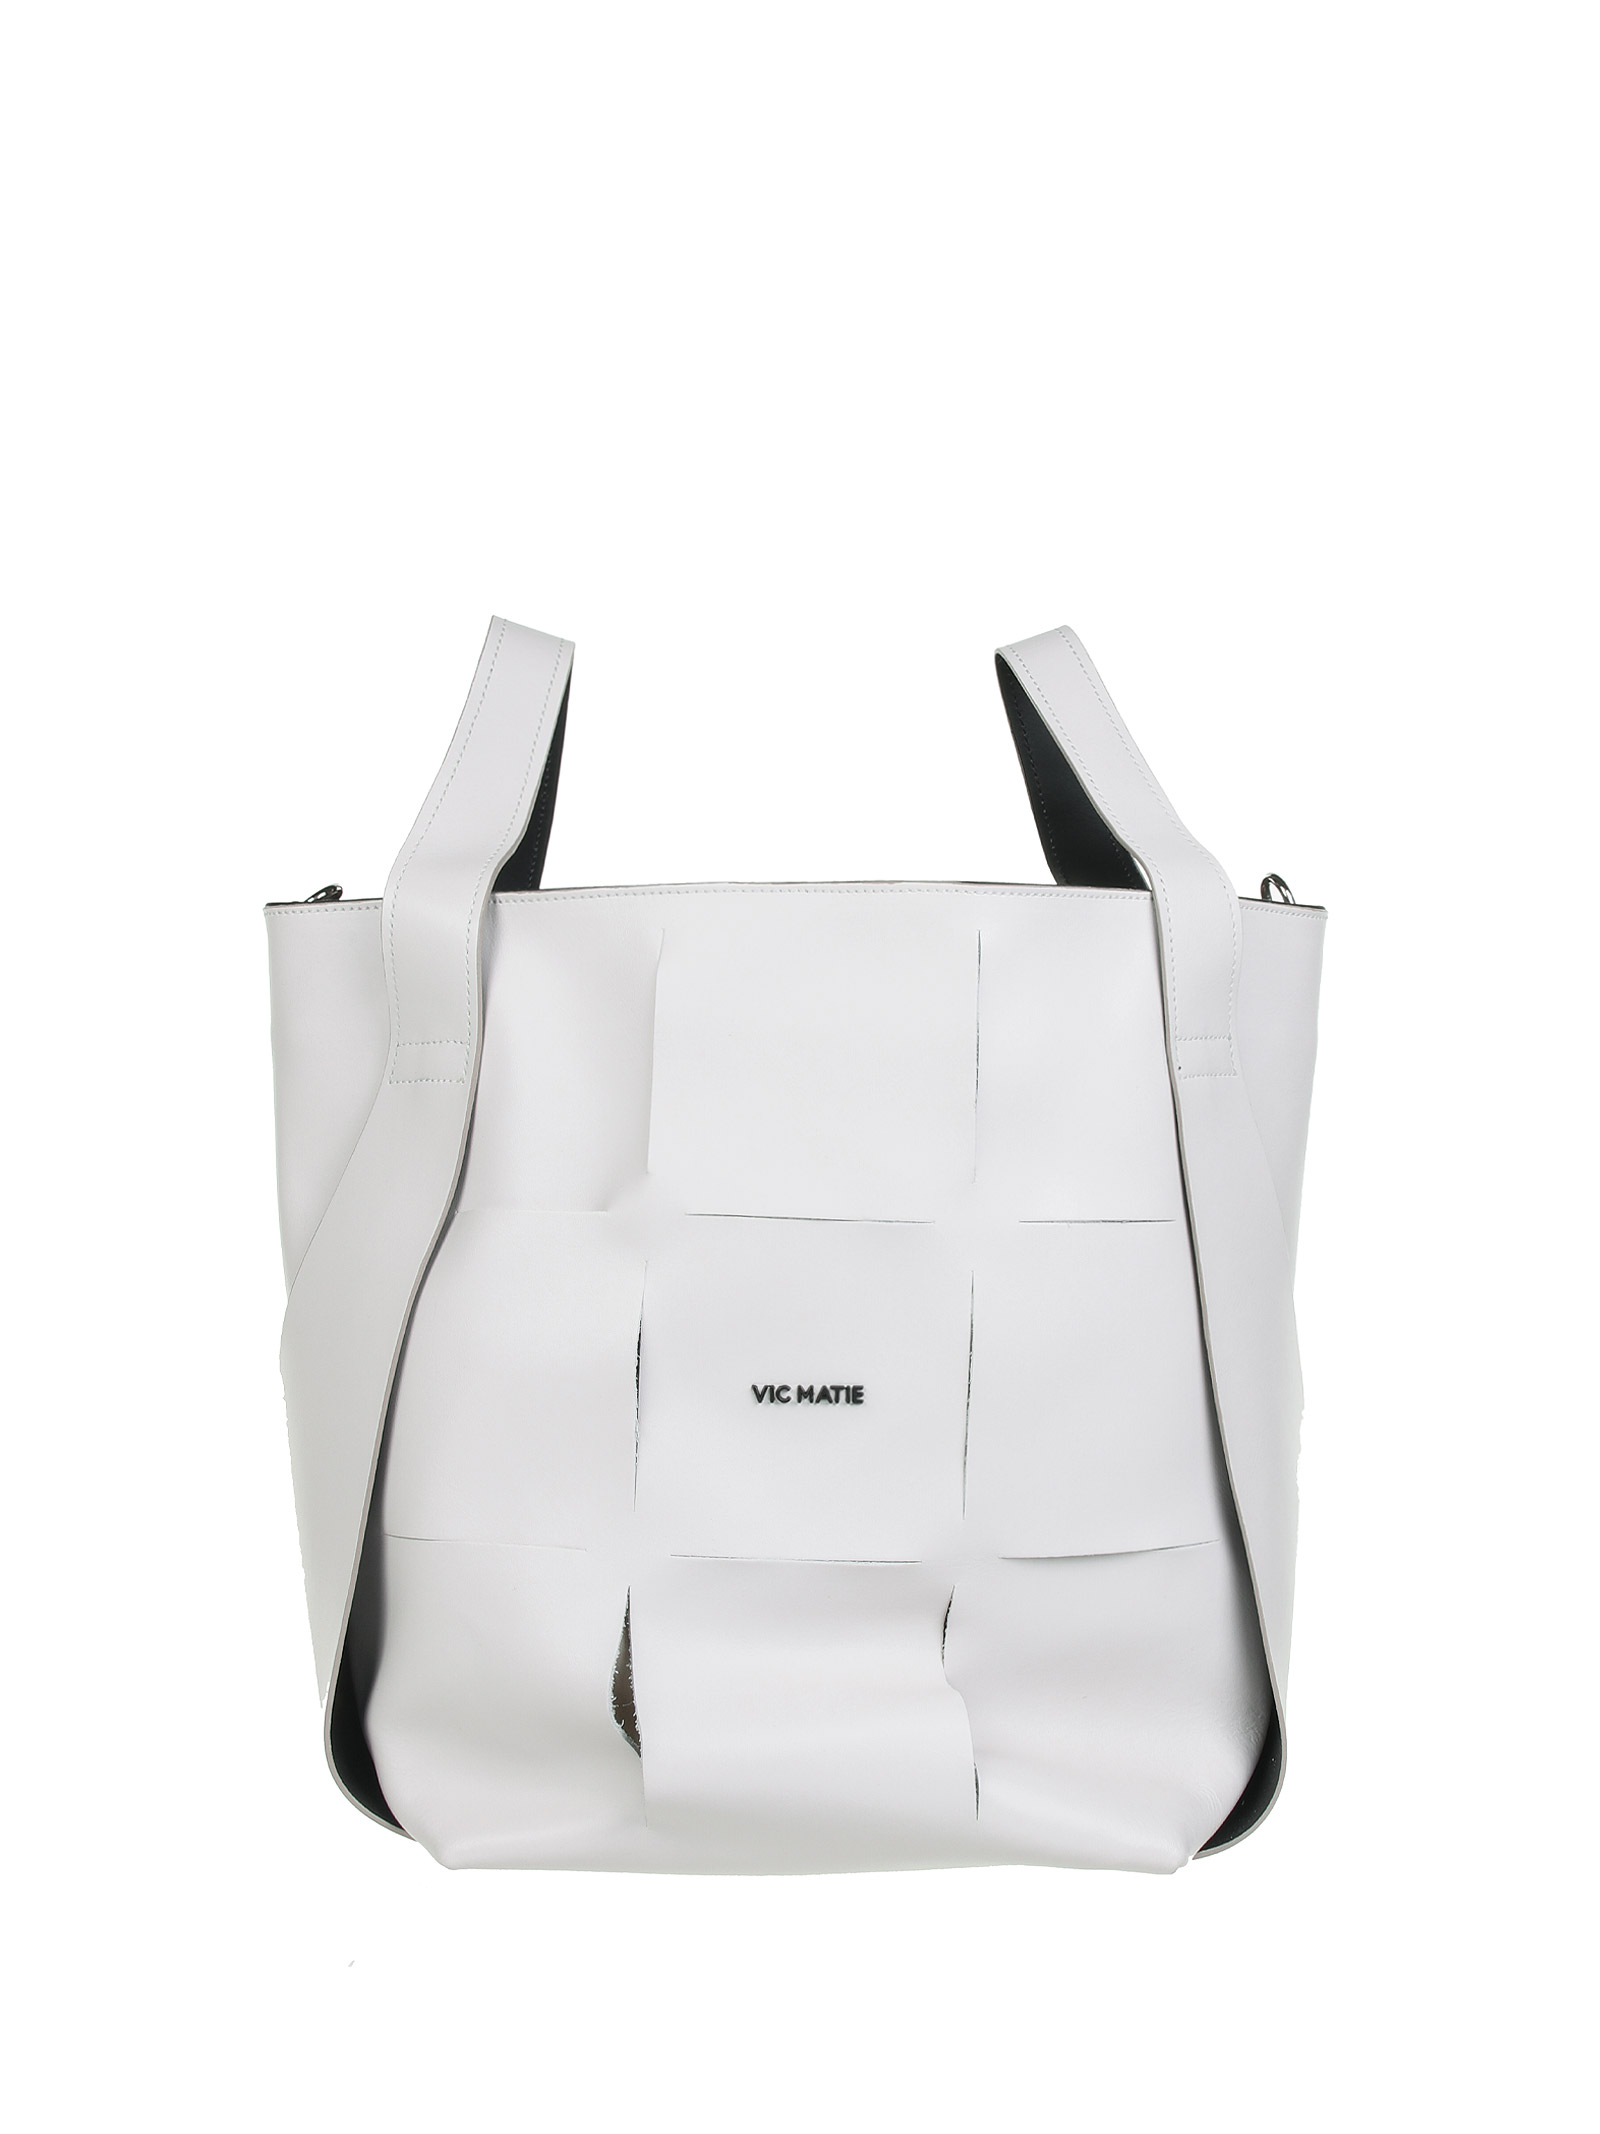 Vic Matie Leathers BAGS. WHITE